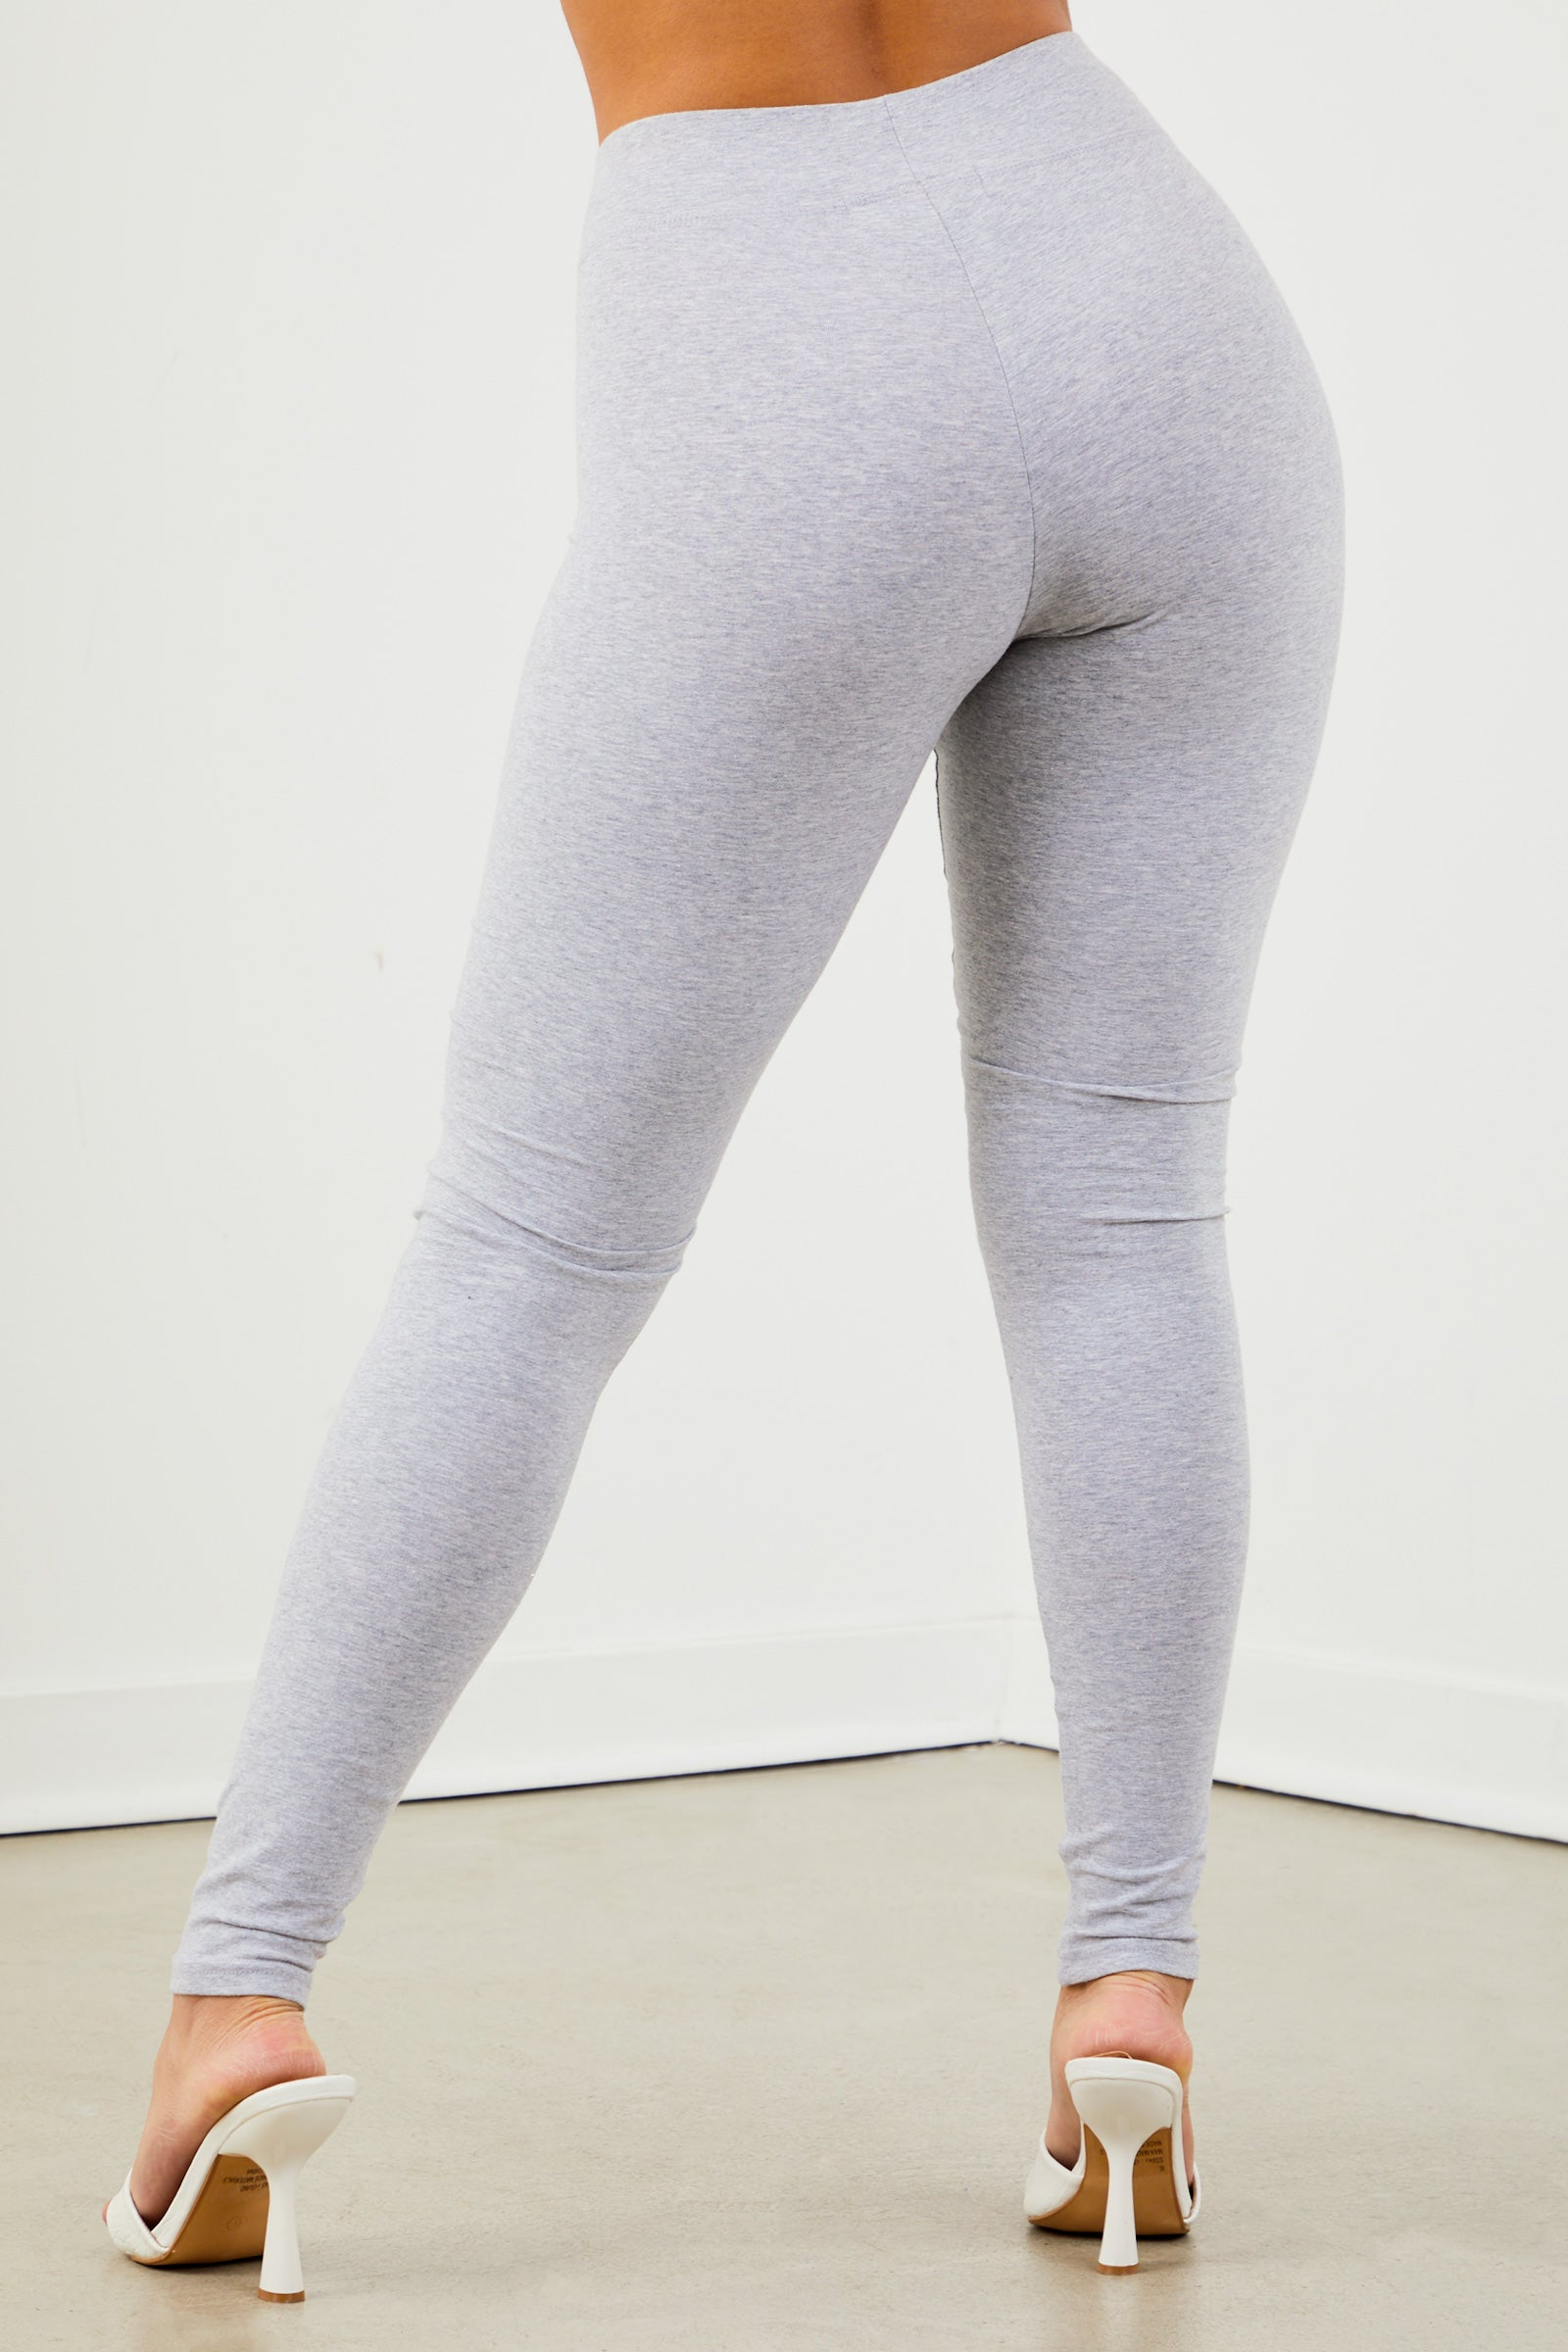 Girls Tour Los Angeles Green